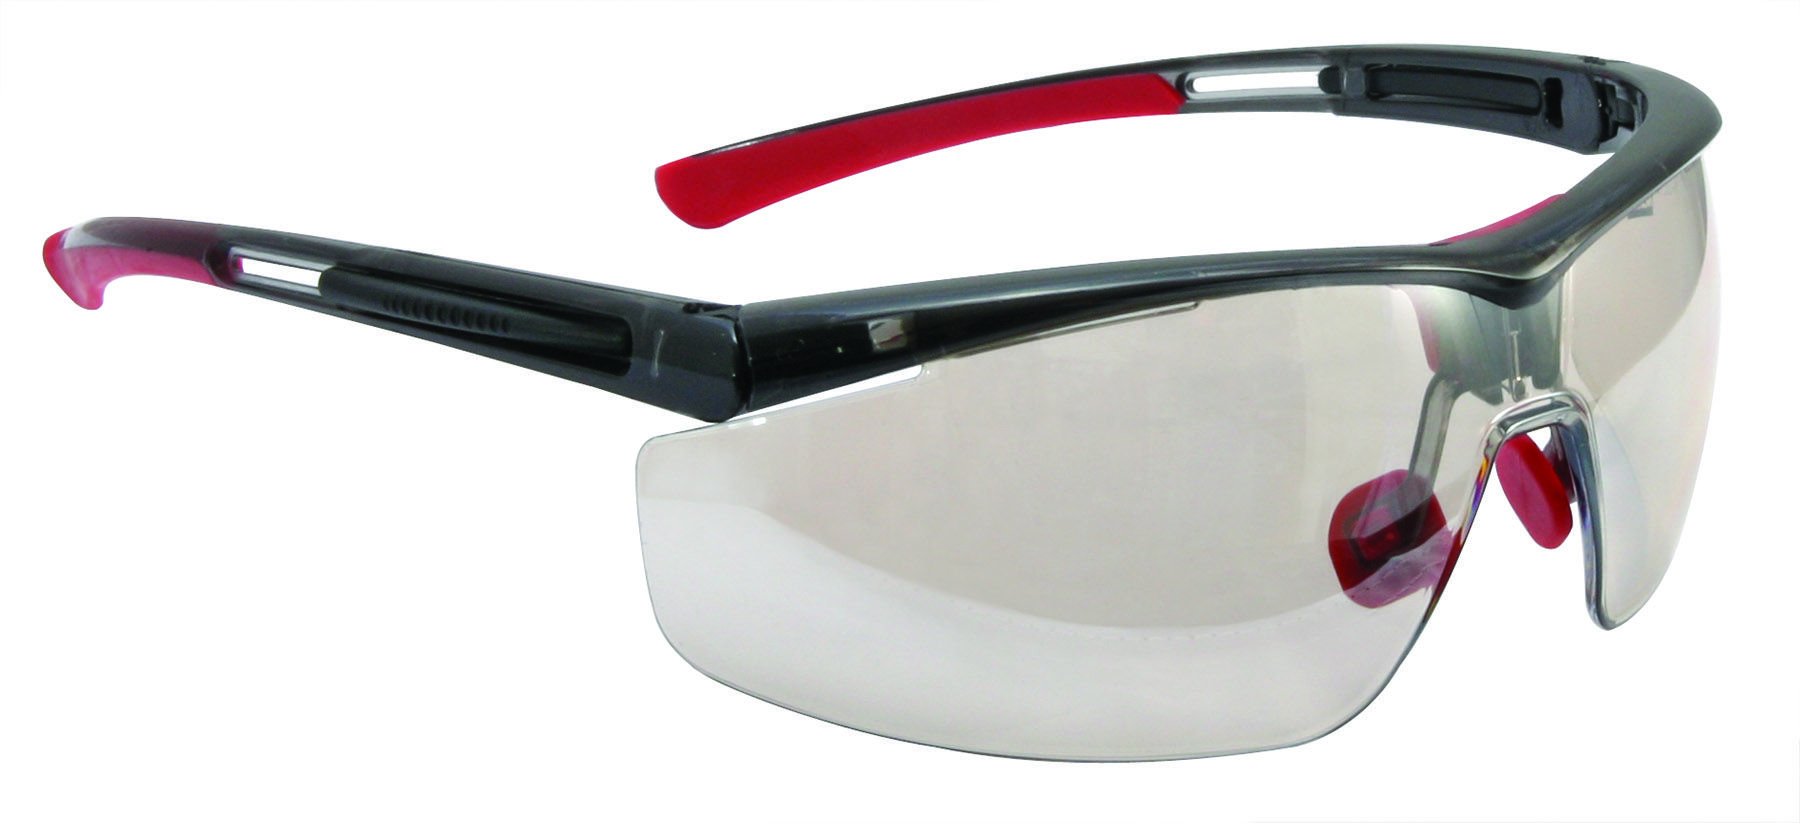 North Safety Adaptec Blue Frame Safety Eyewear. Visit our